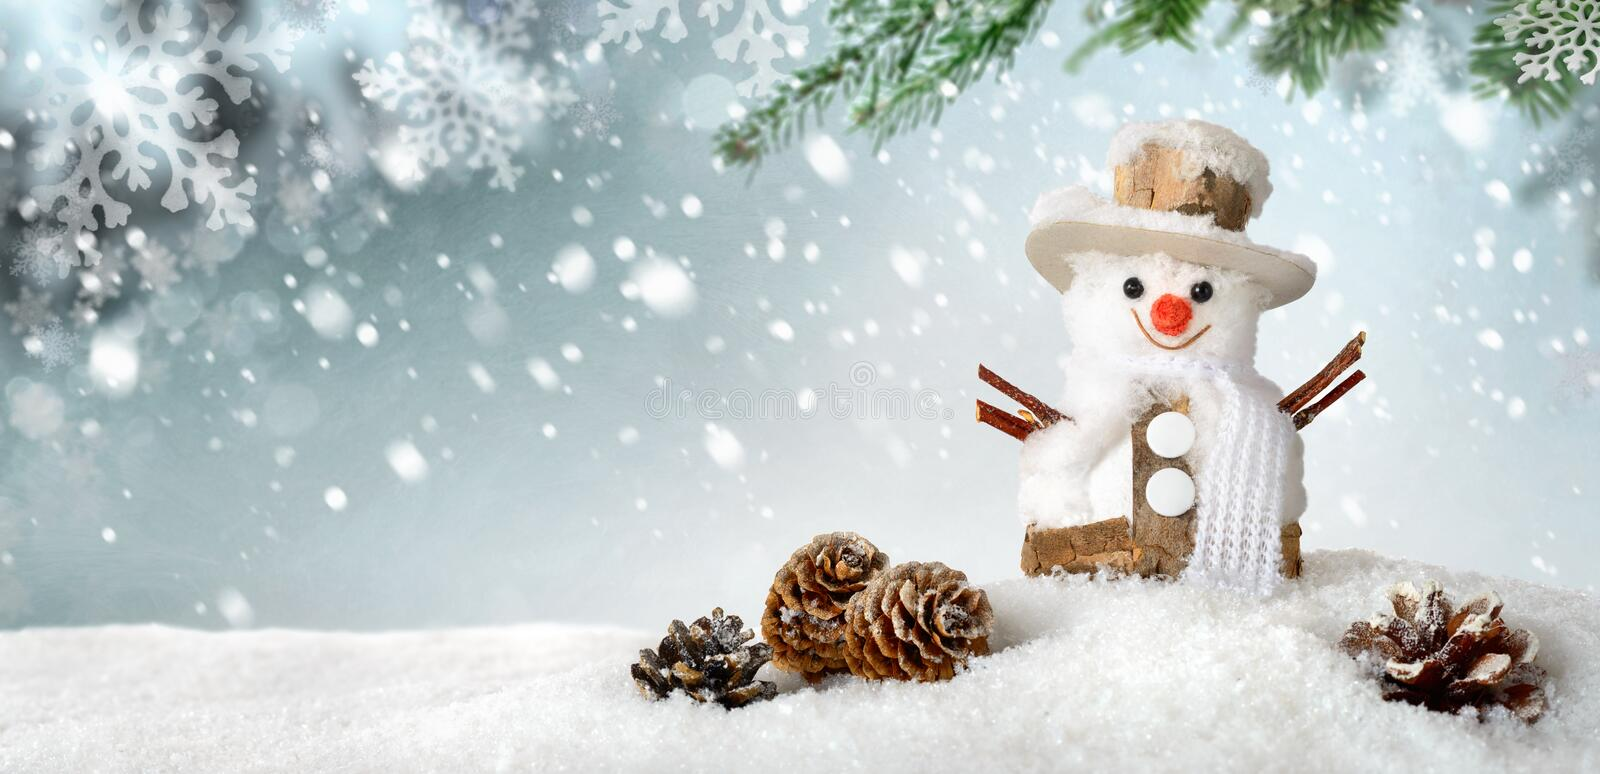 Download Seasonal Background With Happy Snowman Stock Image - Image of christmas, festive: 63018547